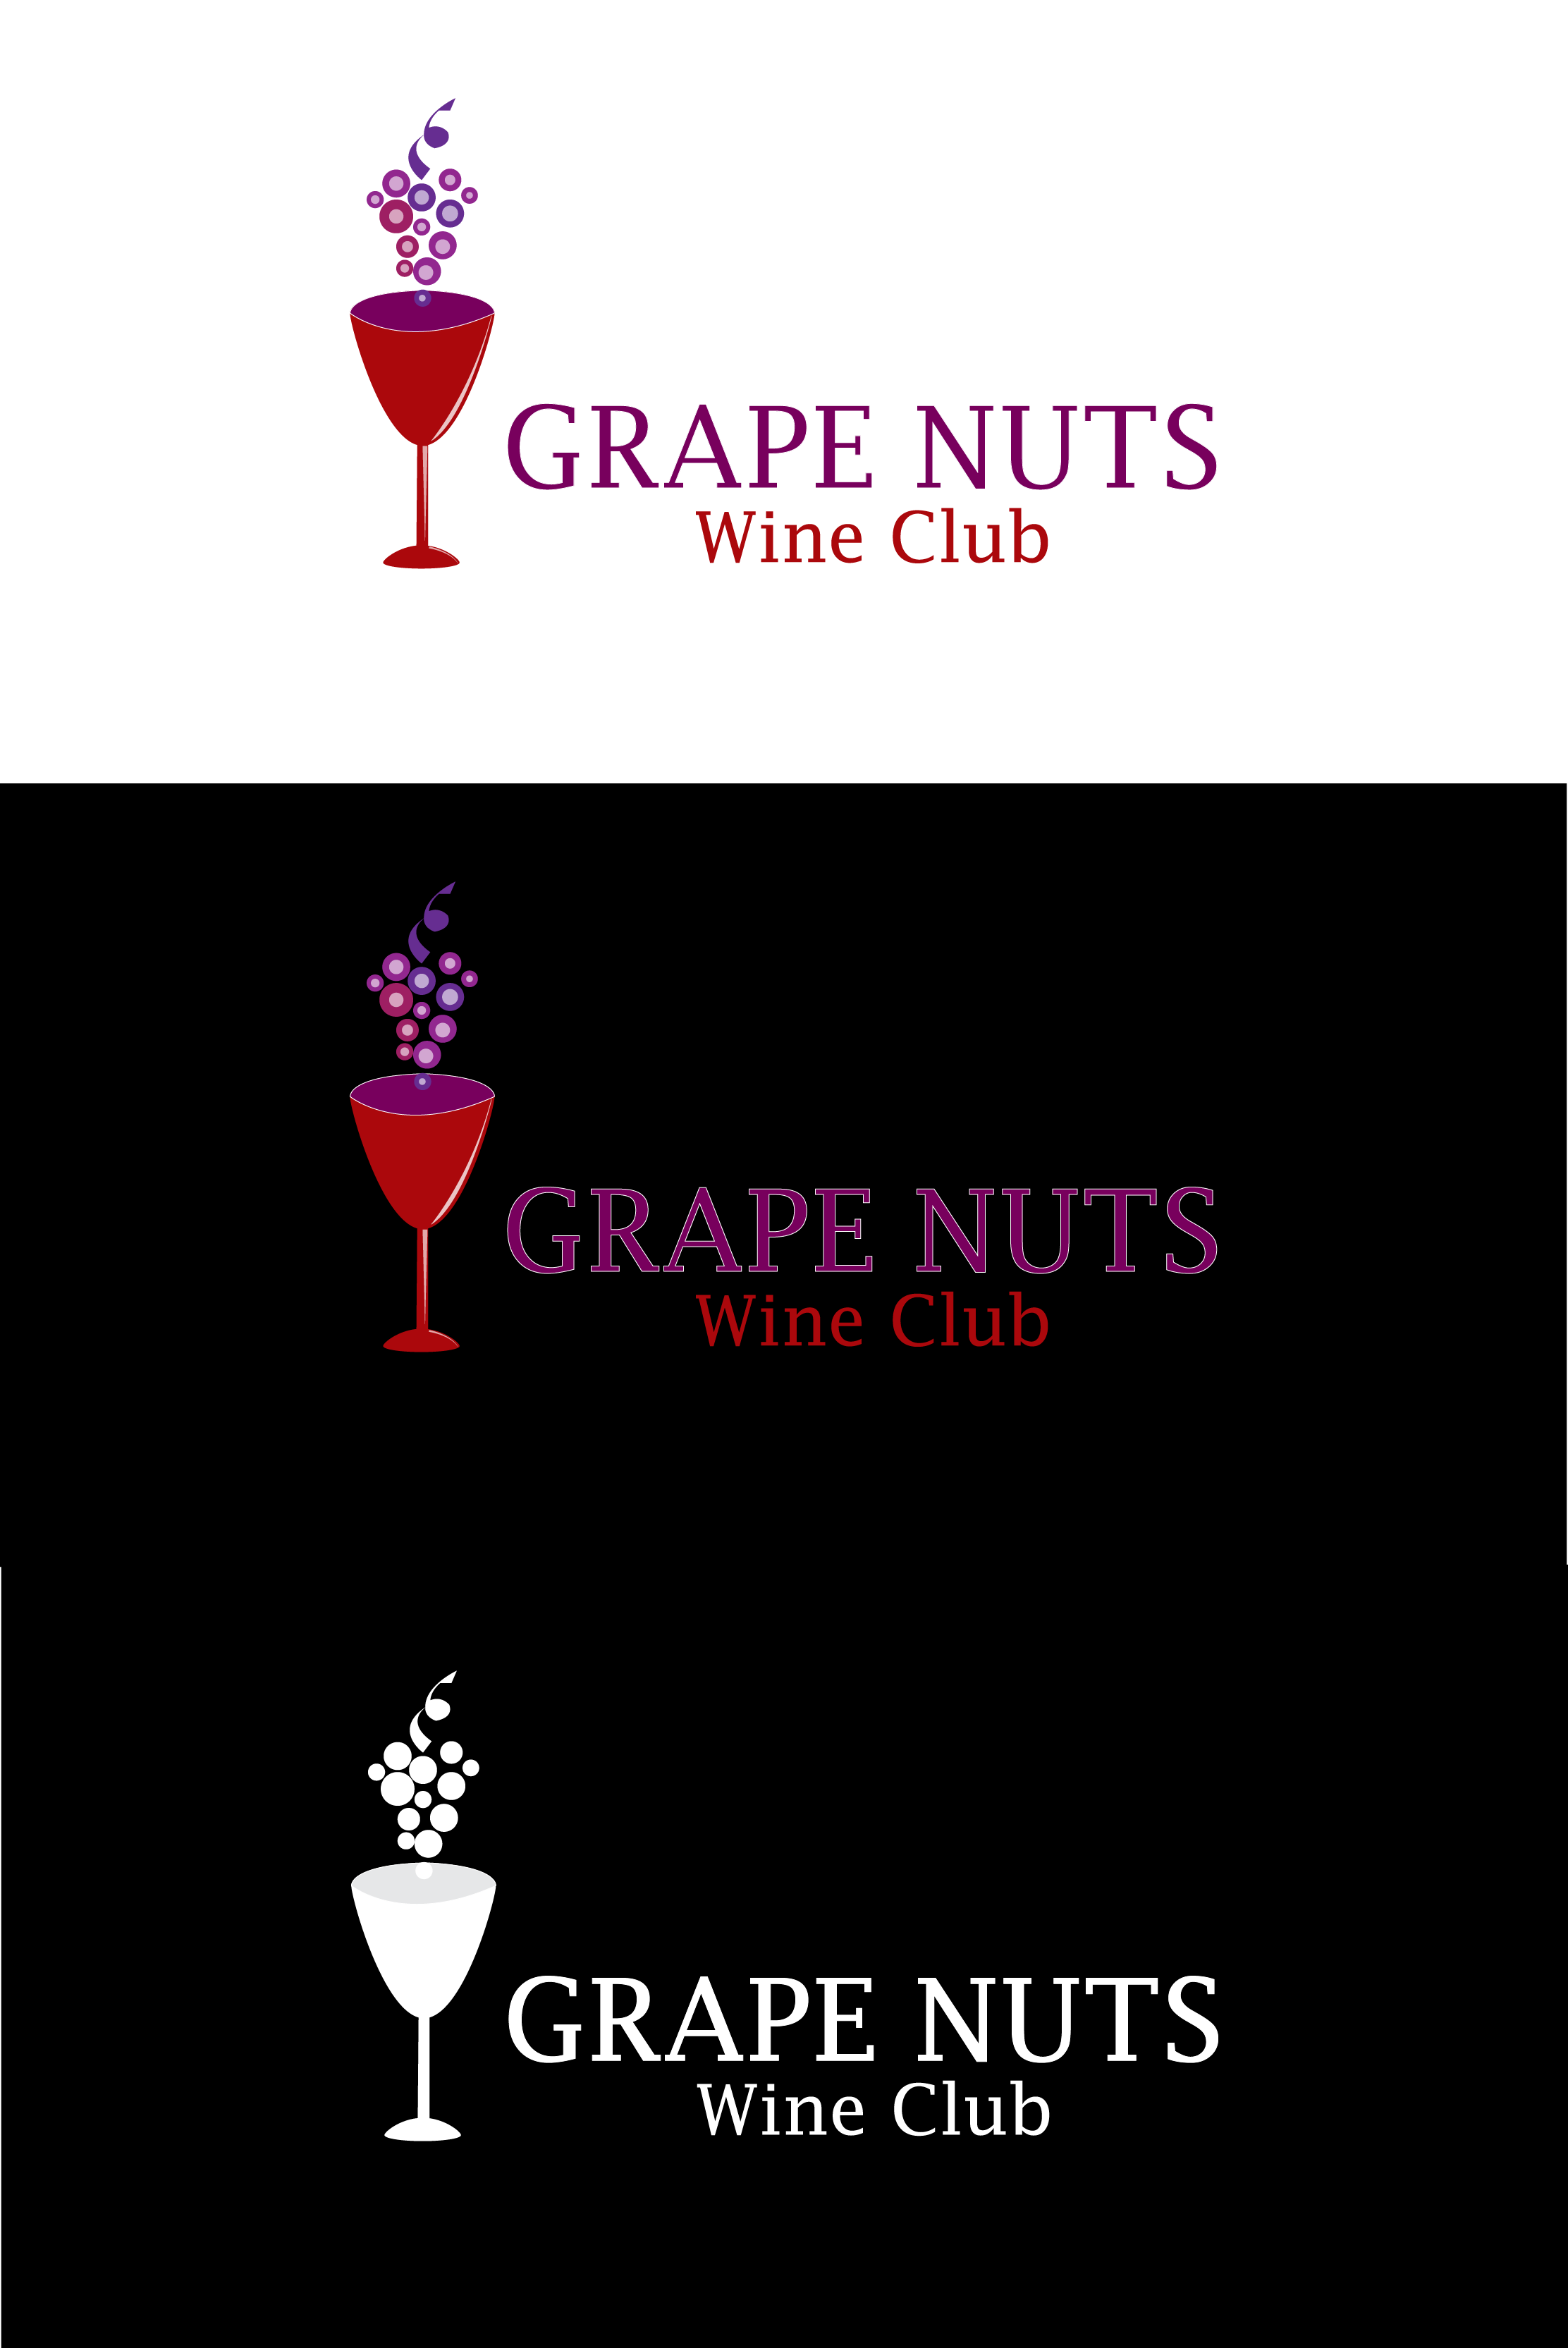 Logo Design by mediaproductionart - Entry No. 37 in the Logo Design Contest Artistic Logo Design for Grape Nuts Wine Club.